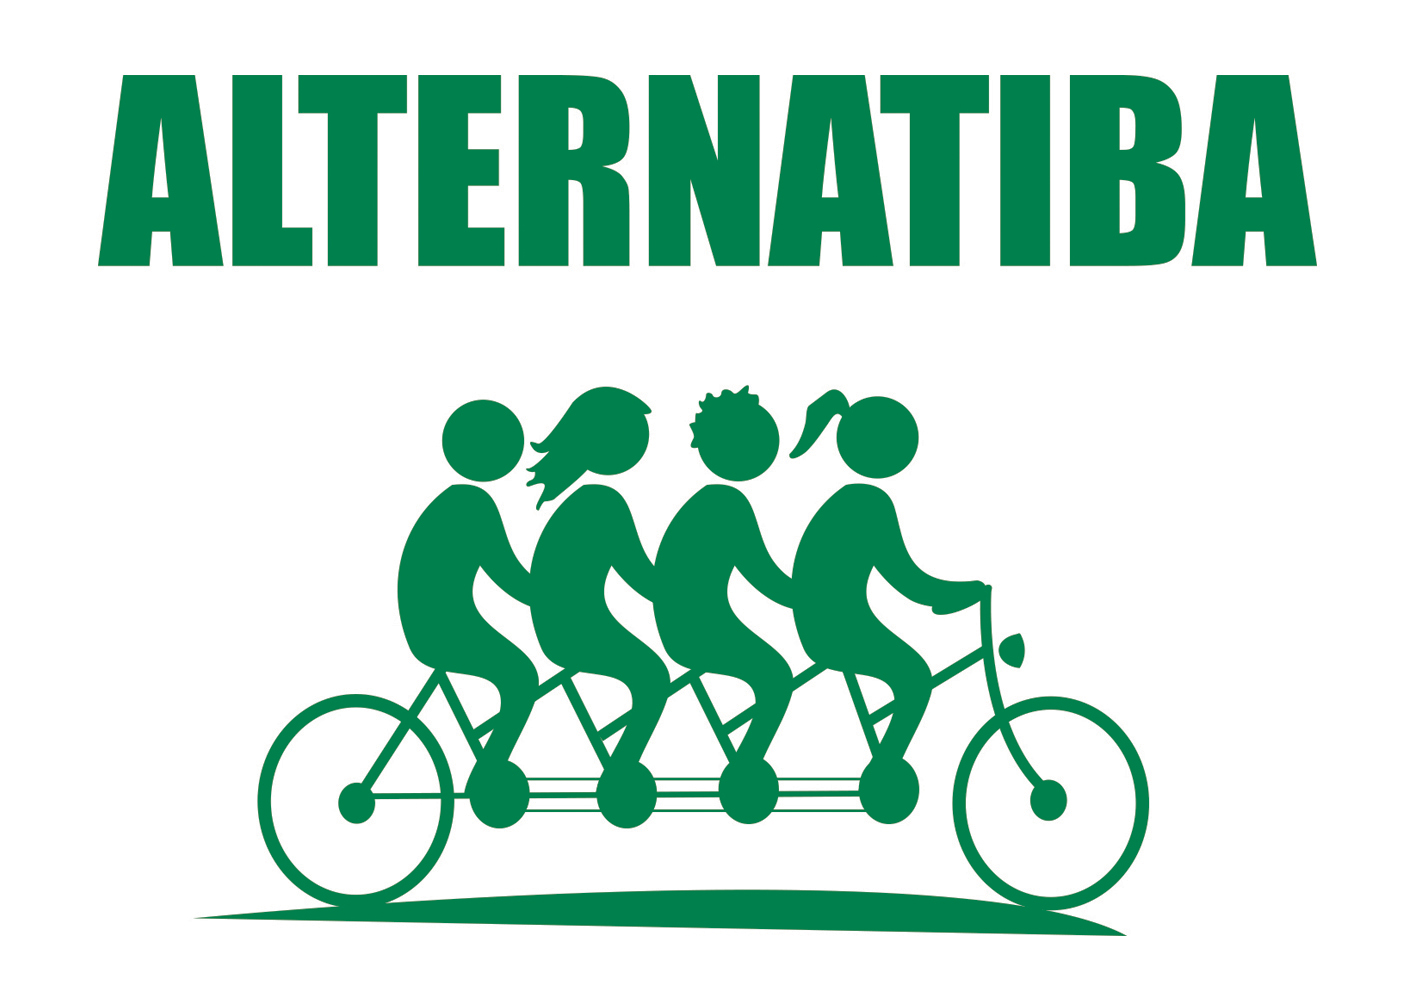 Alternatiba_logo